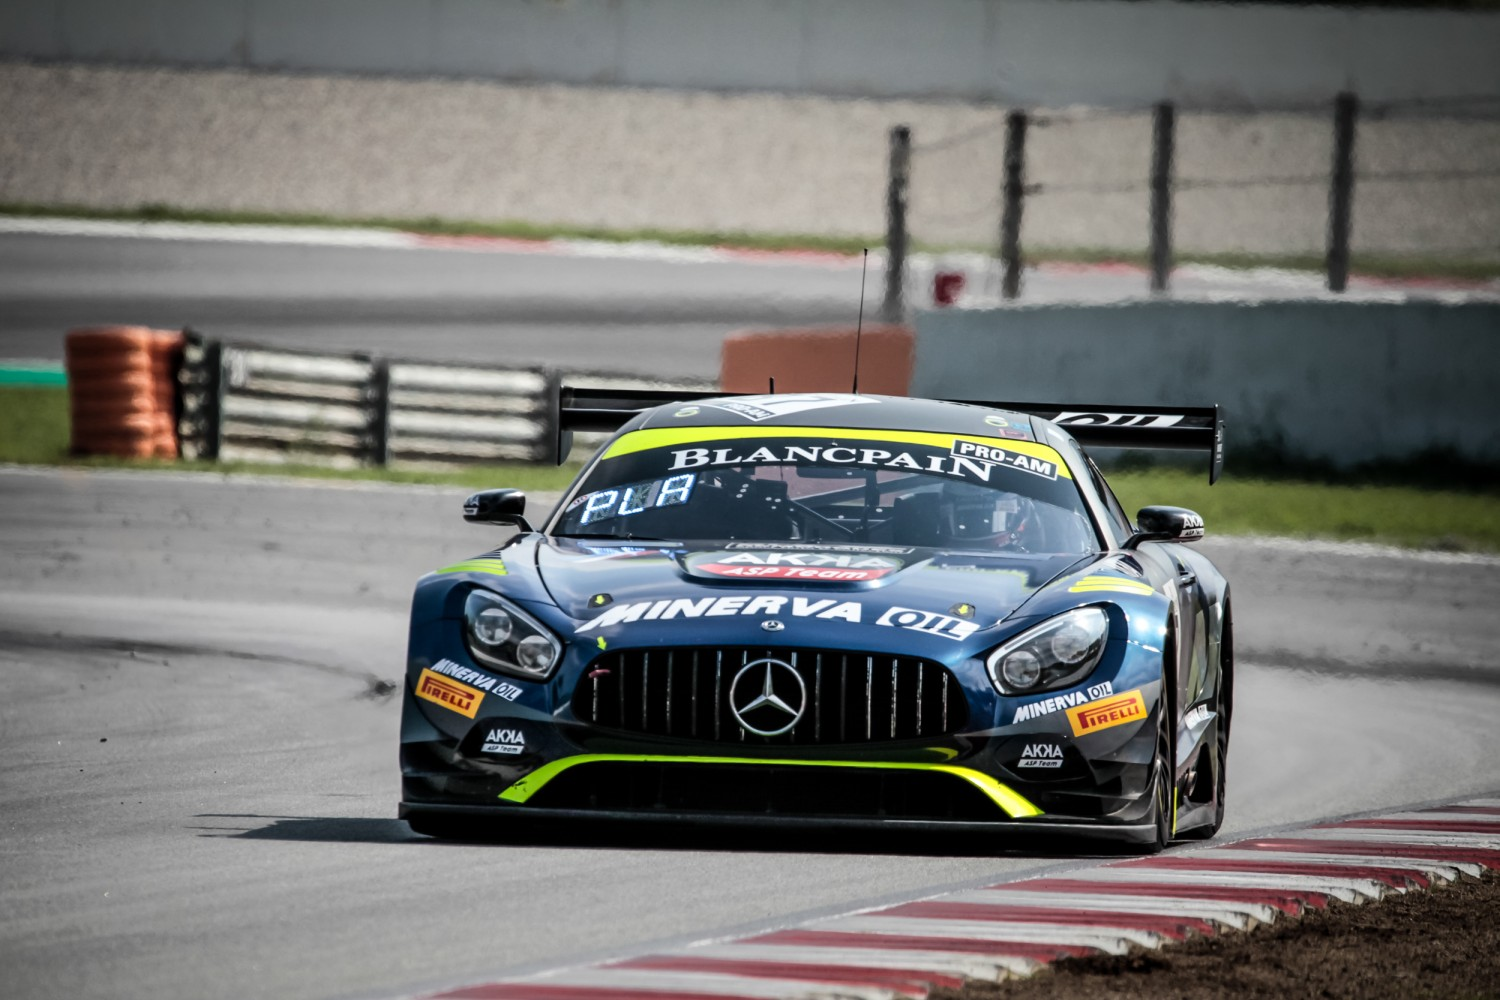 #87 Akka ASP Team FRA Mercedes-AMG GT3 Jim Pla FRA Mauro Ricci ITA Jean-Luc Beaubelique FRA Pro-Am Cup, Friday Sessions  | SRO / Patrick Hecq Photography